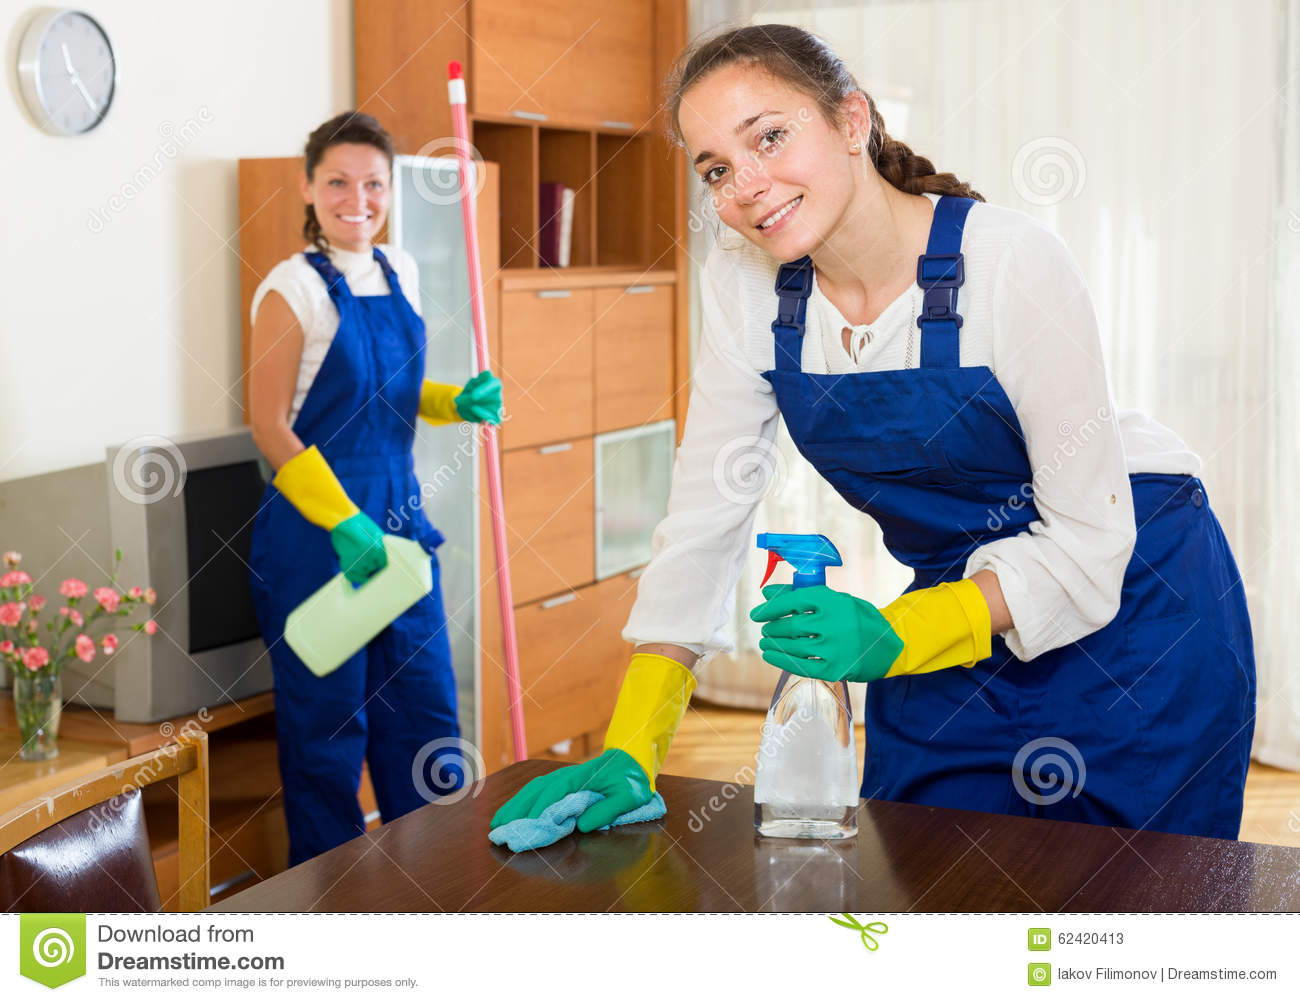 cleaners cleaning in room stock image  image of cleaner